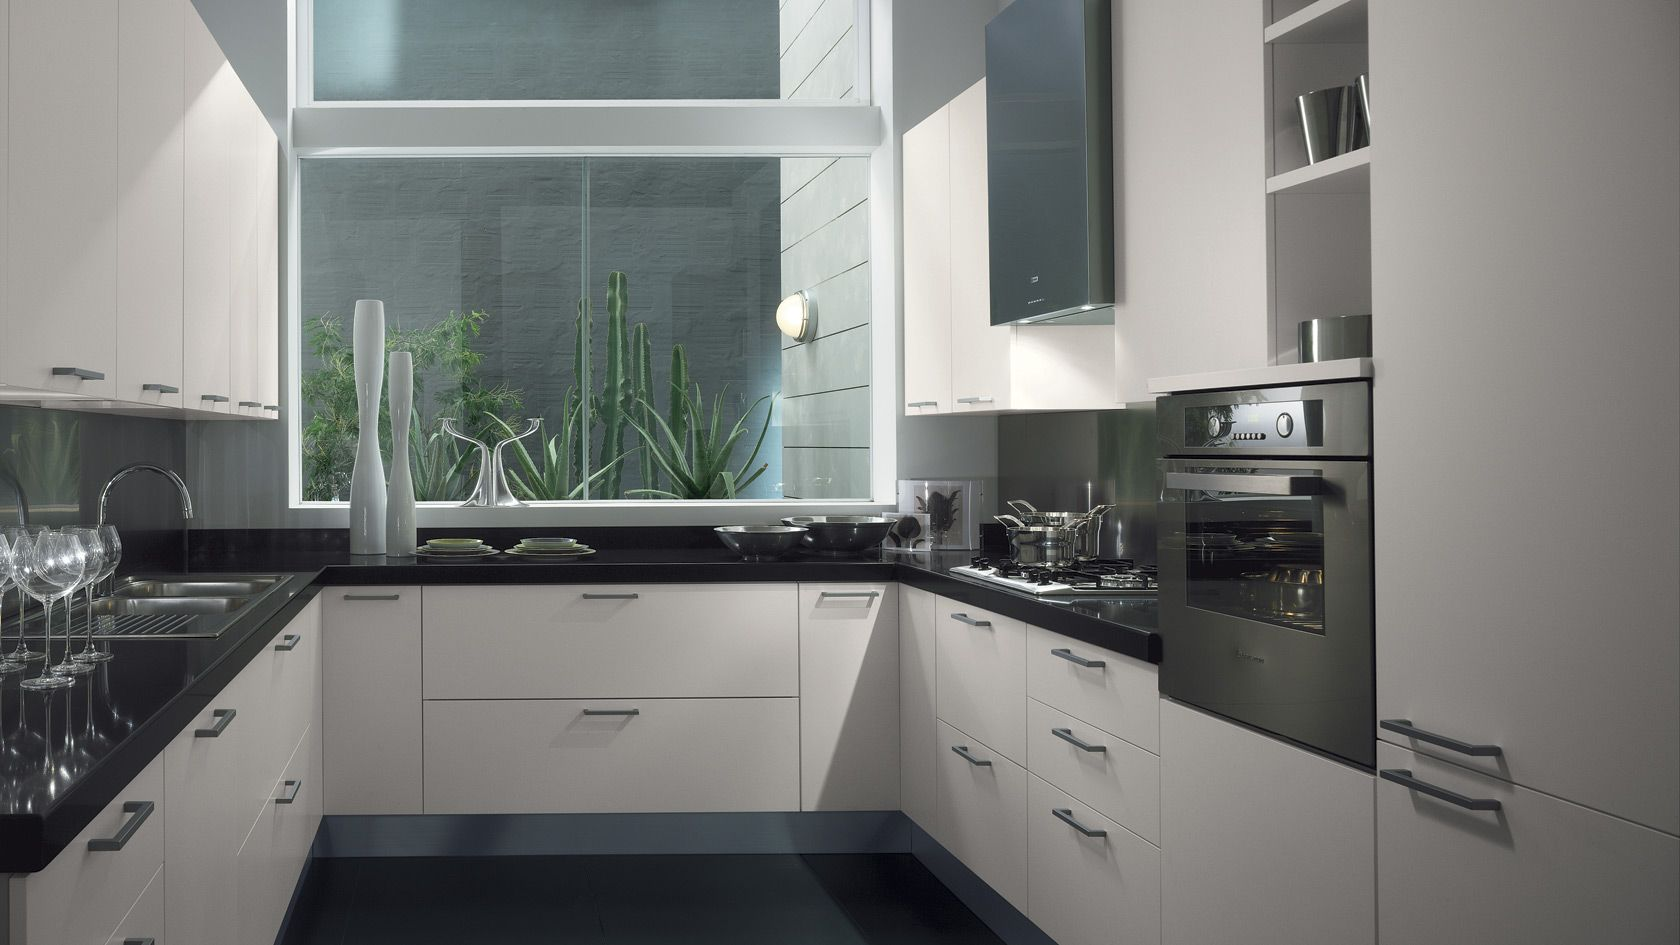 kitchensmall white modern kitchen. kitchen design amusing black white modern small space feats compartments and pull kitchensmall